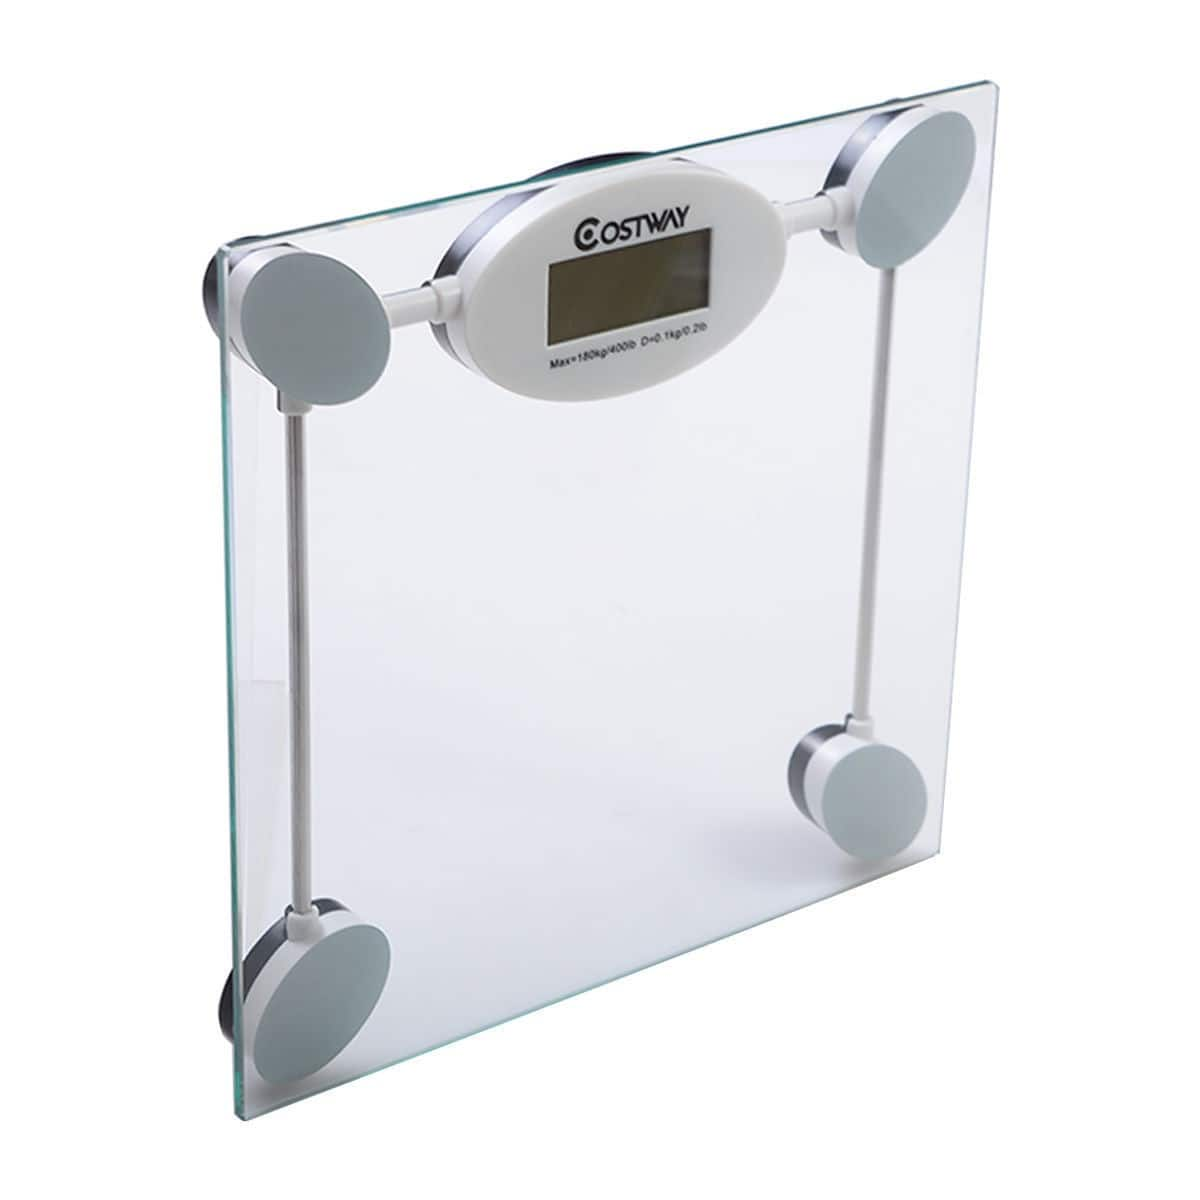 Costway 396 lb Personal Glass Digital Weight Scale $7.95 + Free Shipping